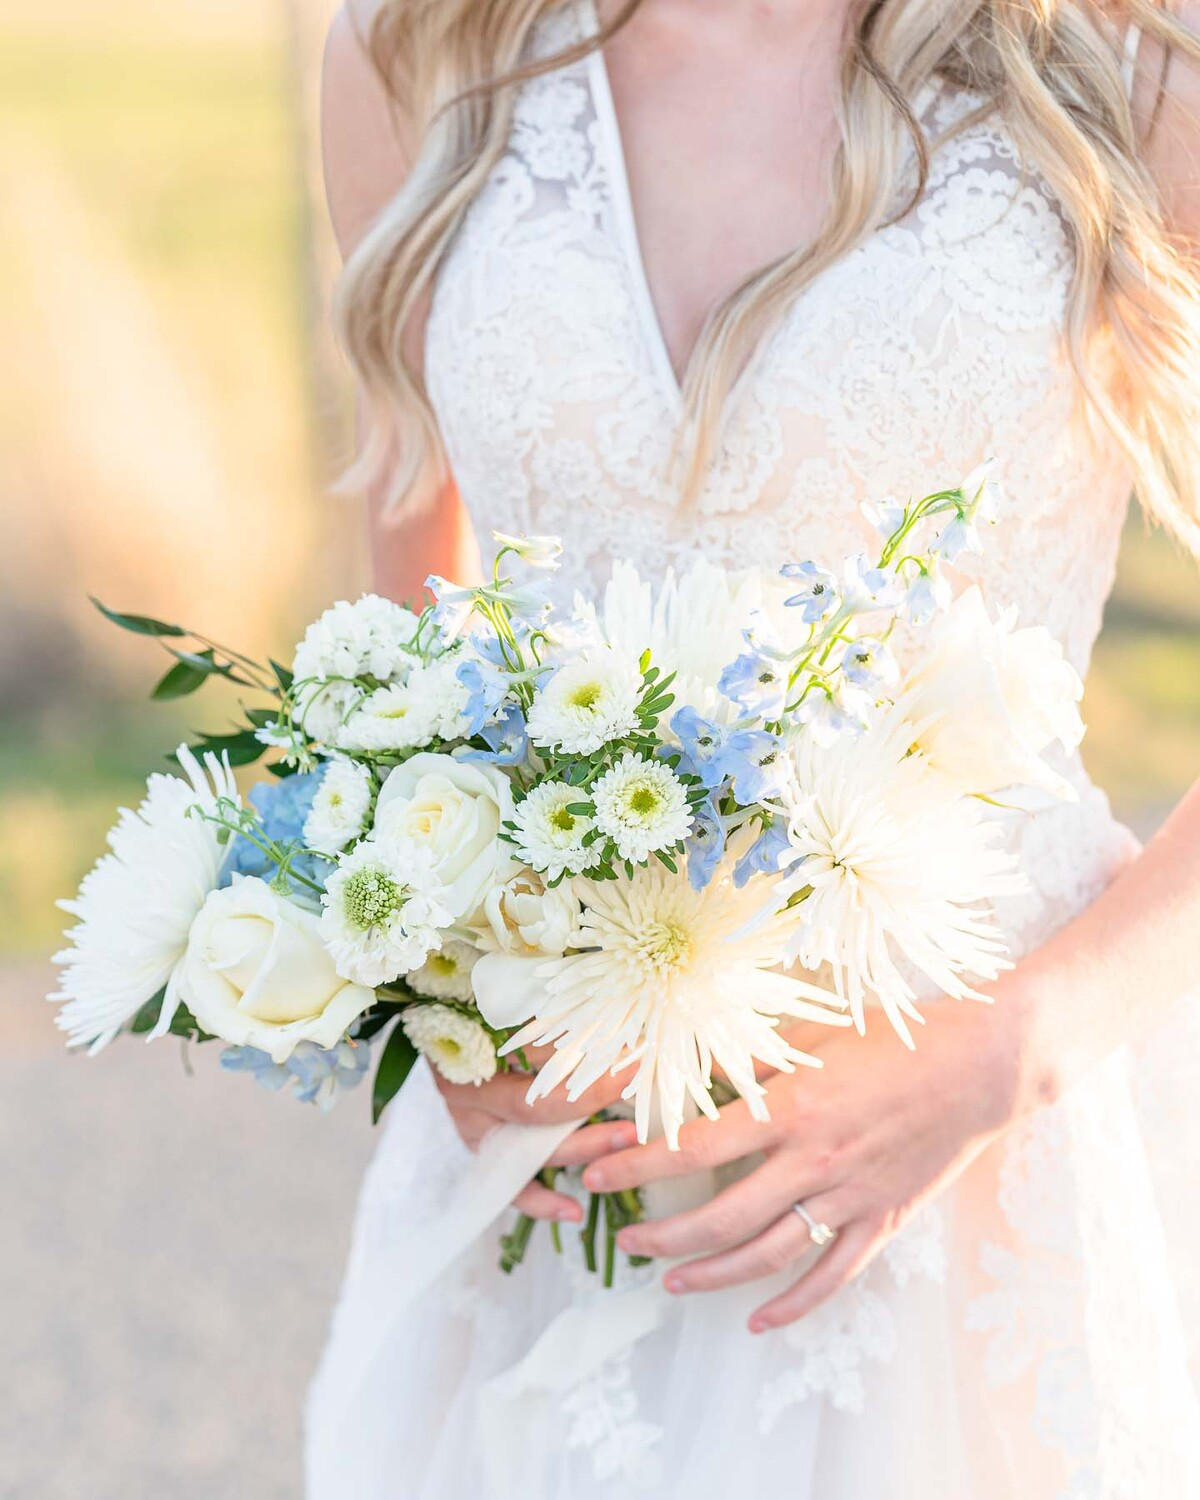 close up of wedding ring and bouquet with white roses, blue flowers, and green leaves